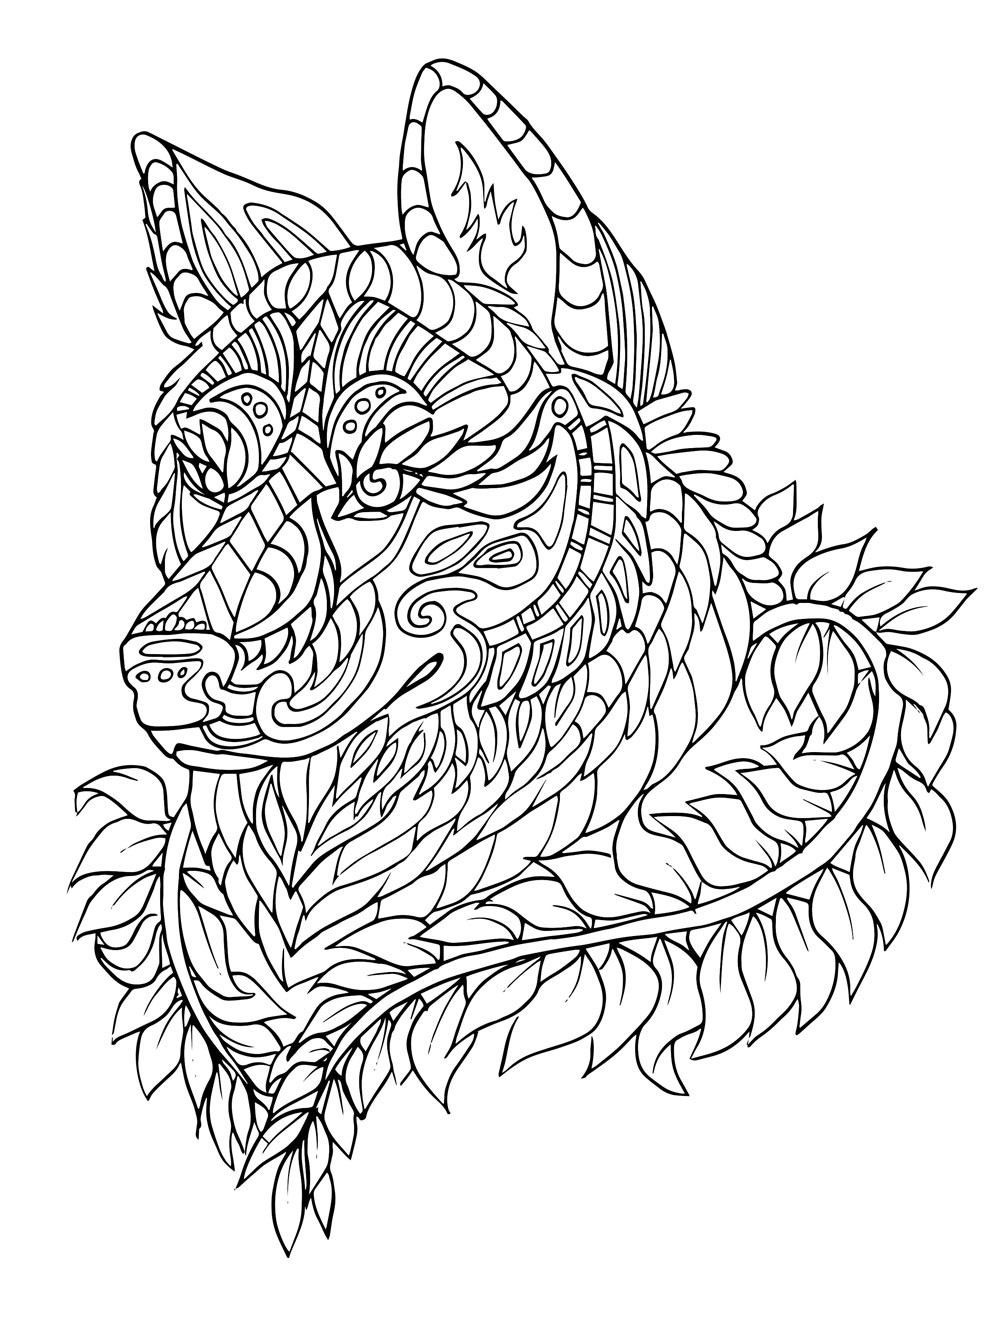 Best ideas about Adult Stress Coloring Books . Save or Pin Stress Relief Coloring Pages Animals Free Now.